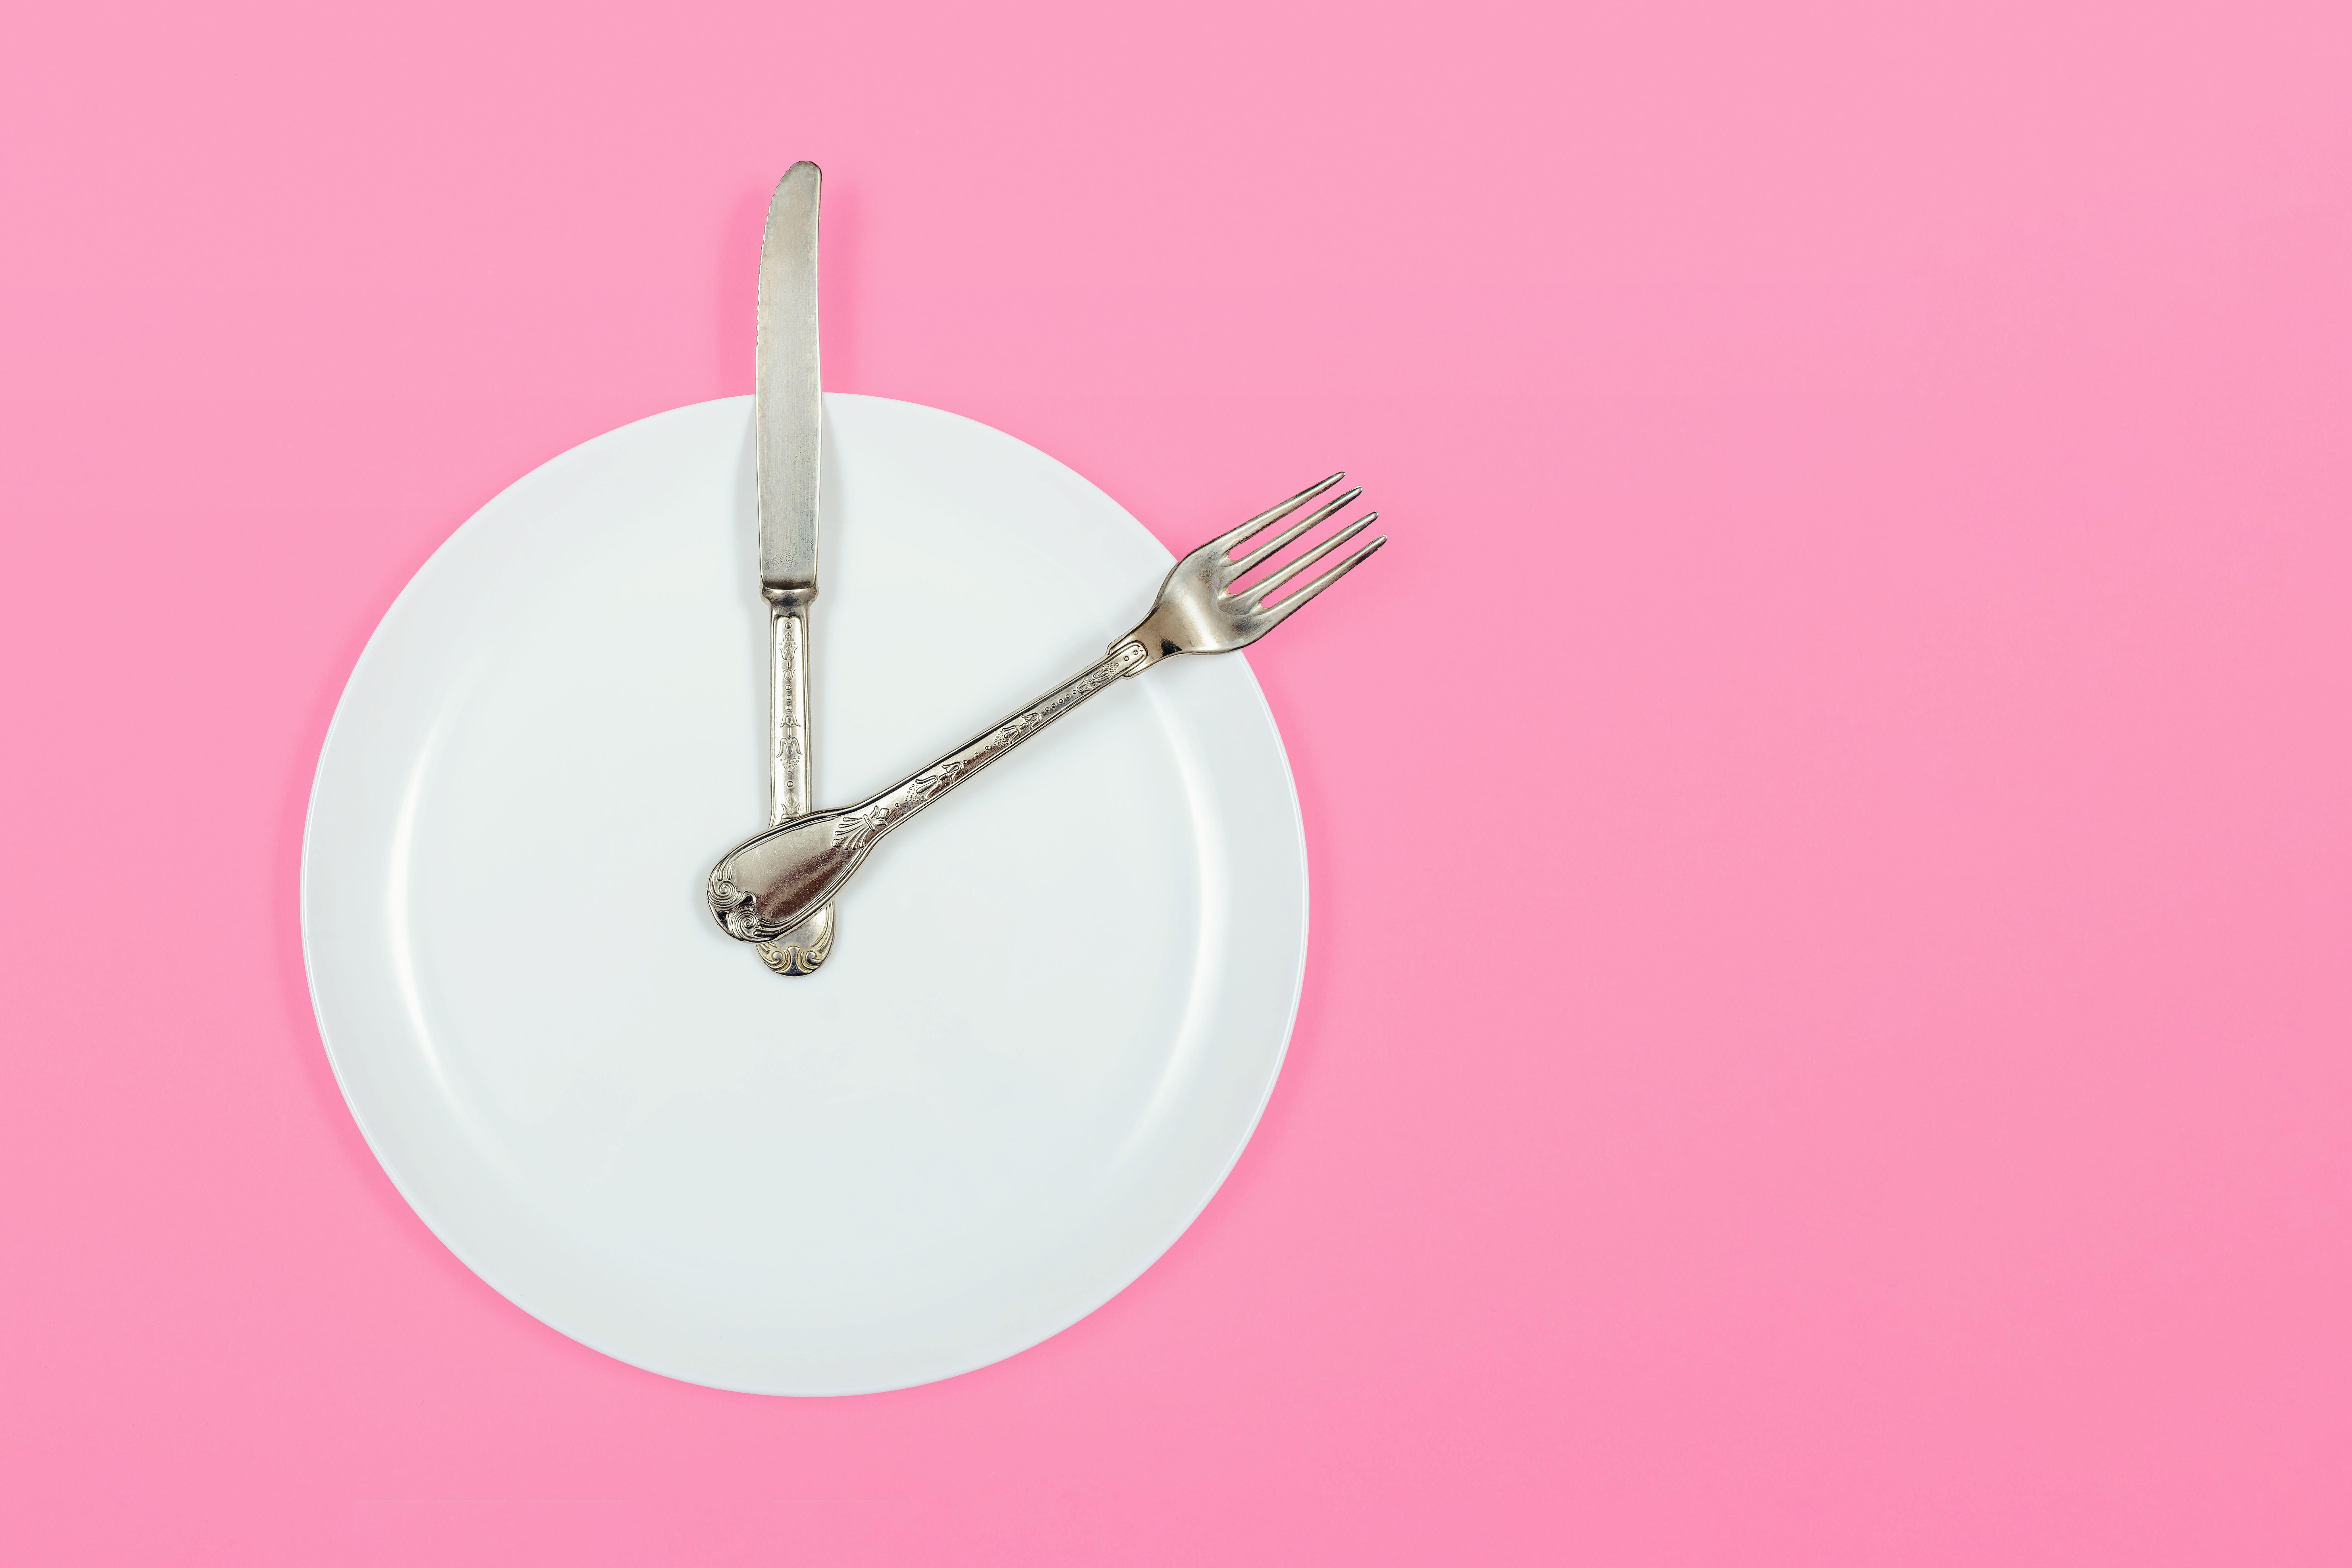 Empty plate with cutlery making it look like a clock